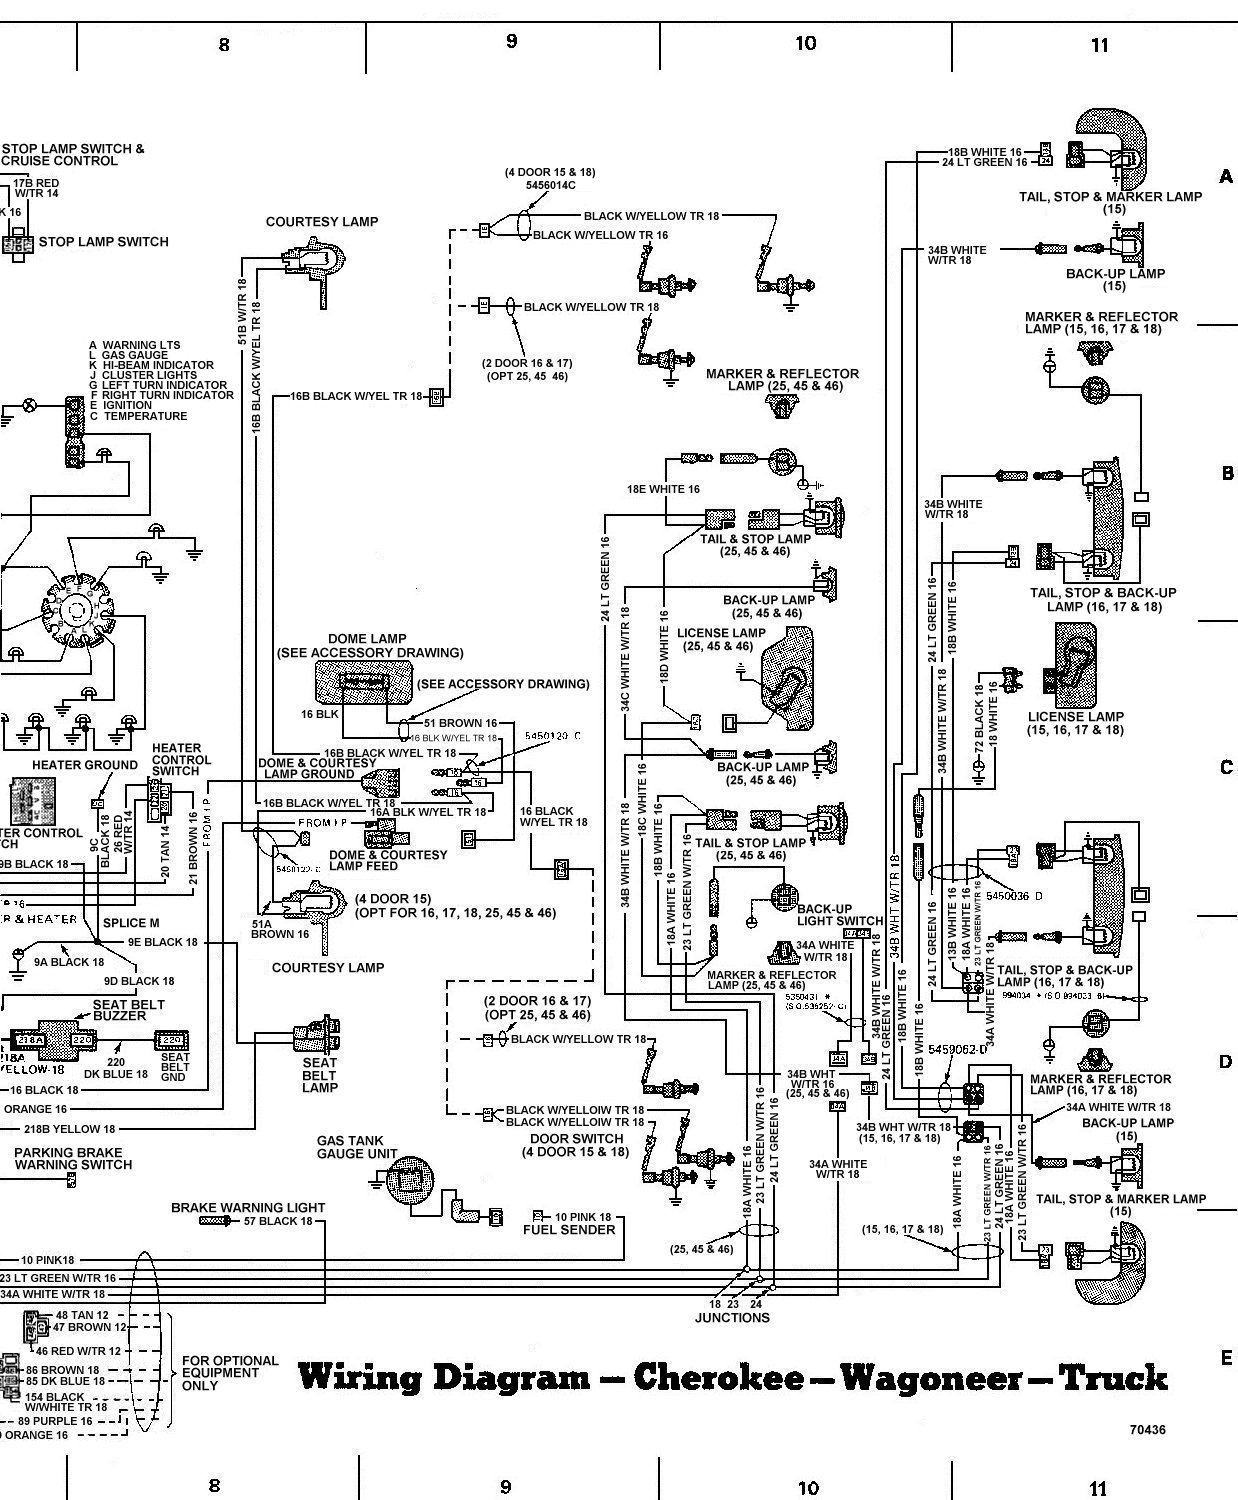 2010 Jeep Commander Wiring Diagram Detailed Schematics Diagram 2002 Jeep  Liberty Wiring Diagram 2010 Jeep Commander Wiring Diagram